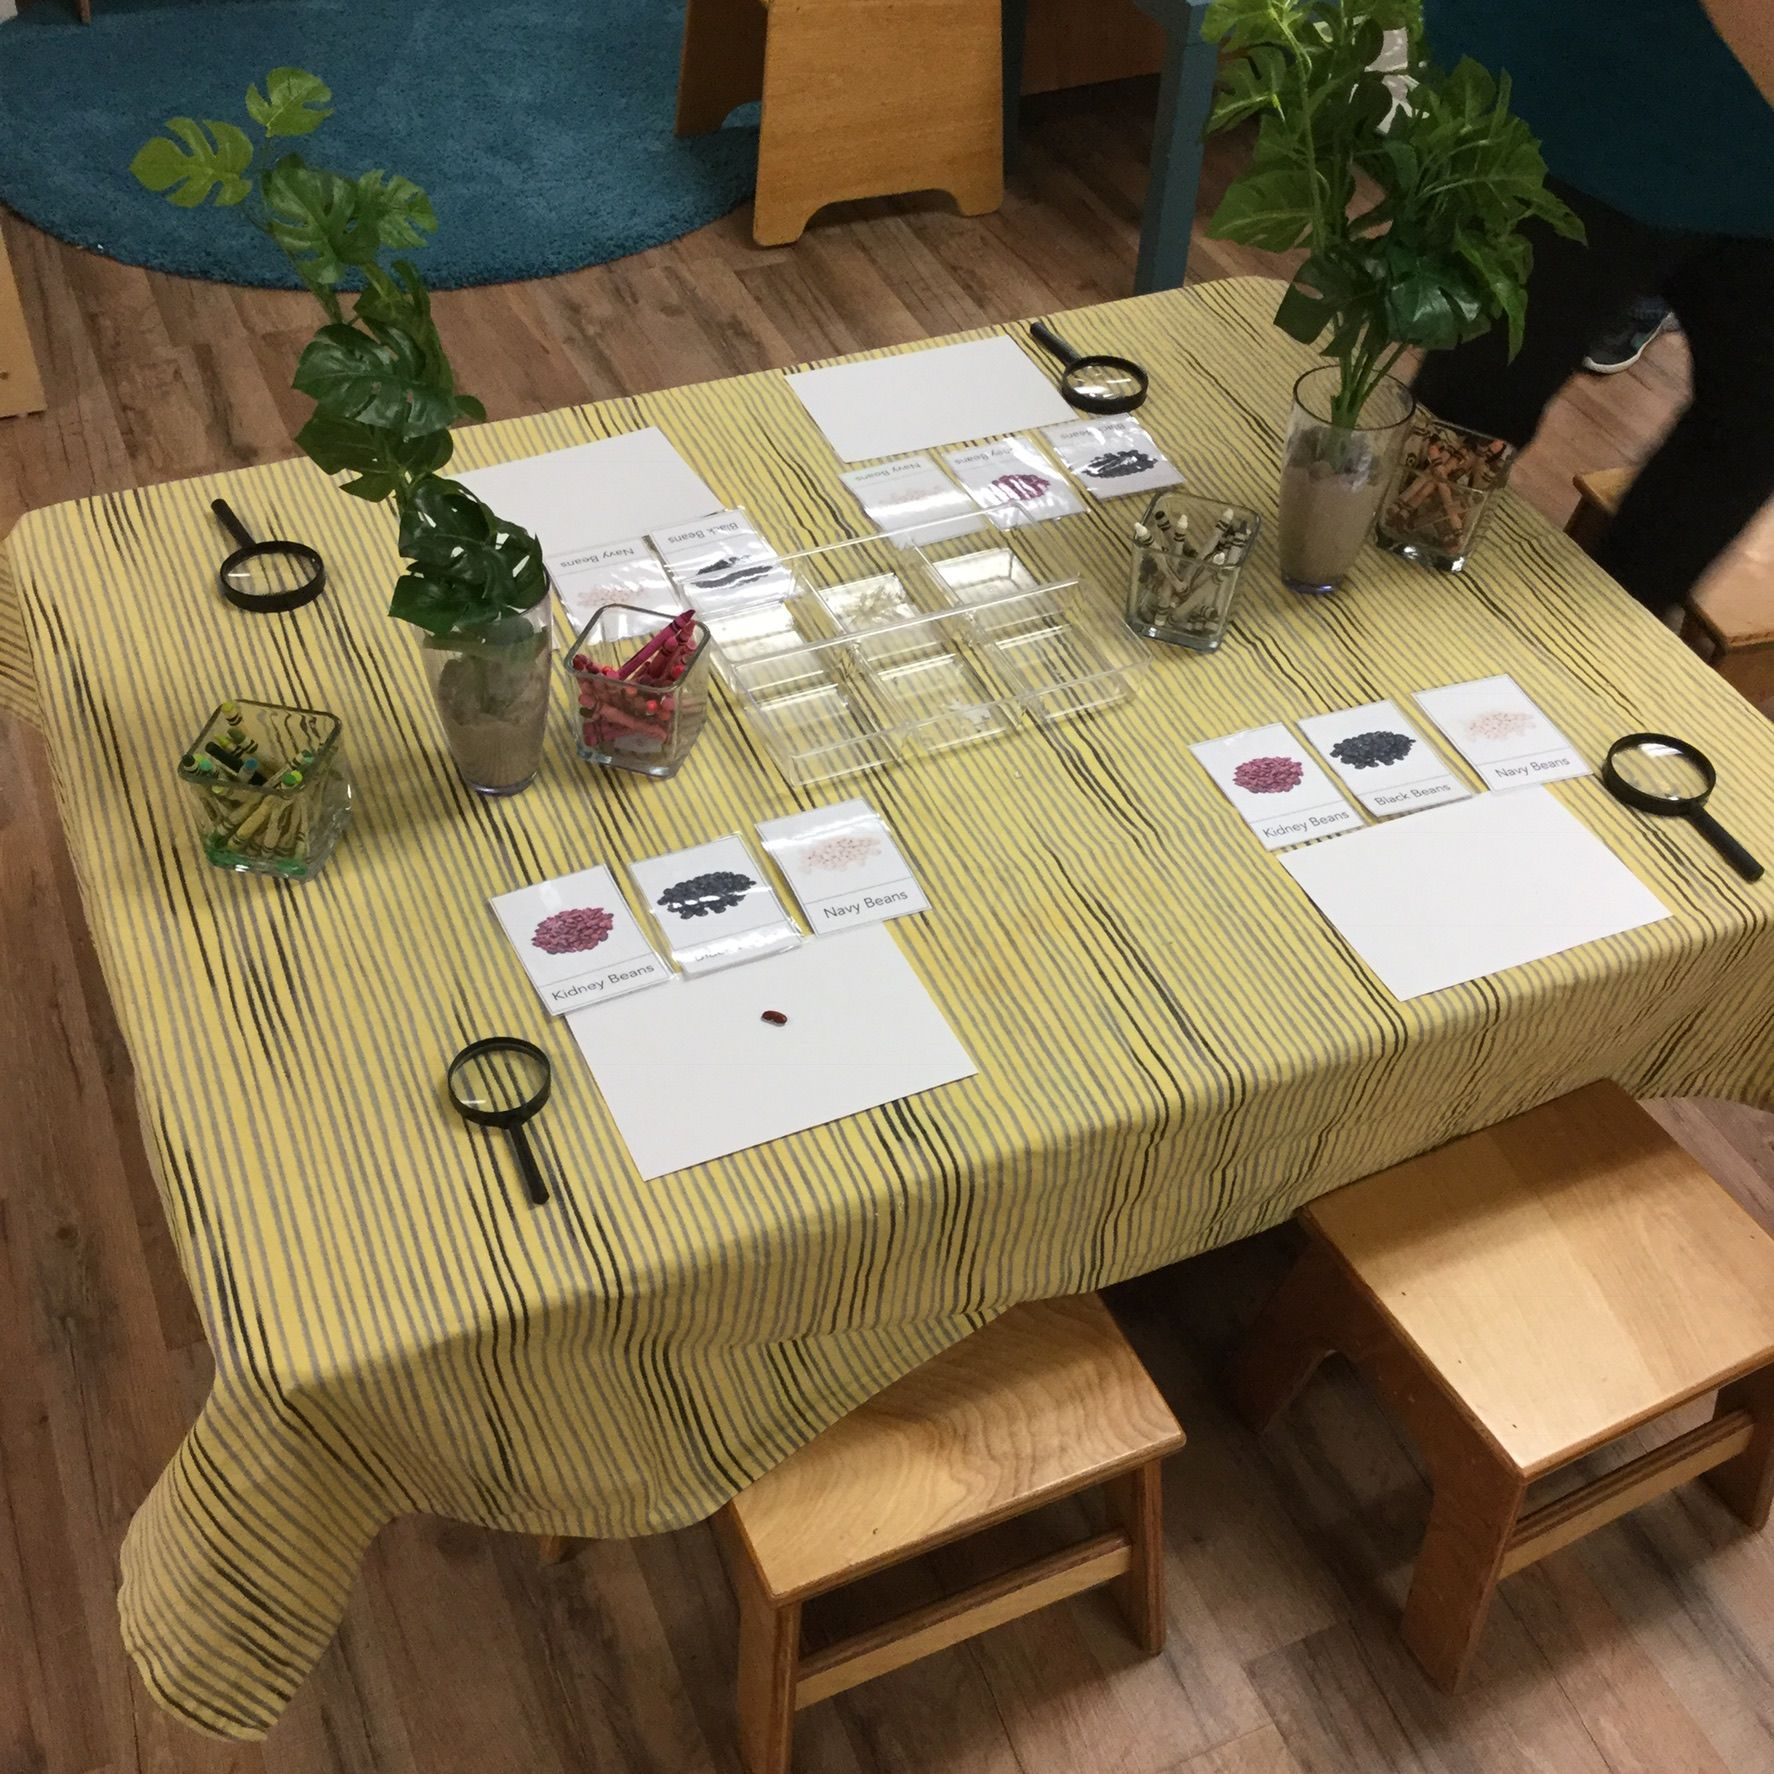 Scientific Exploration With Images Play Based Learning